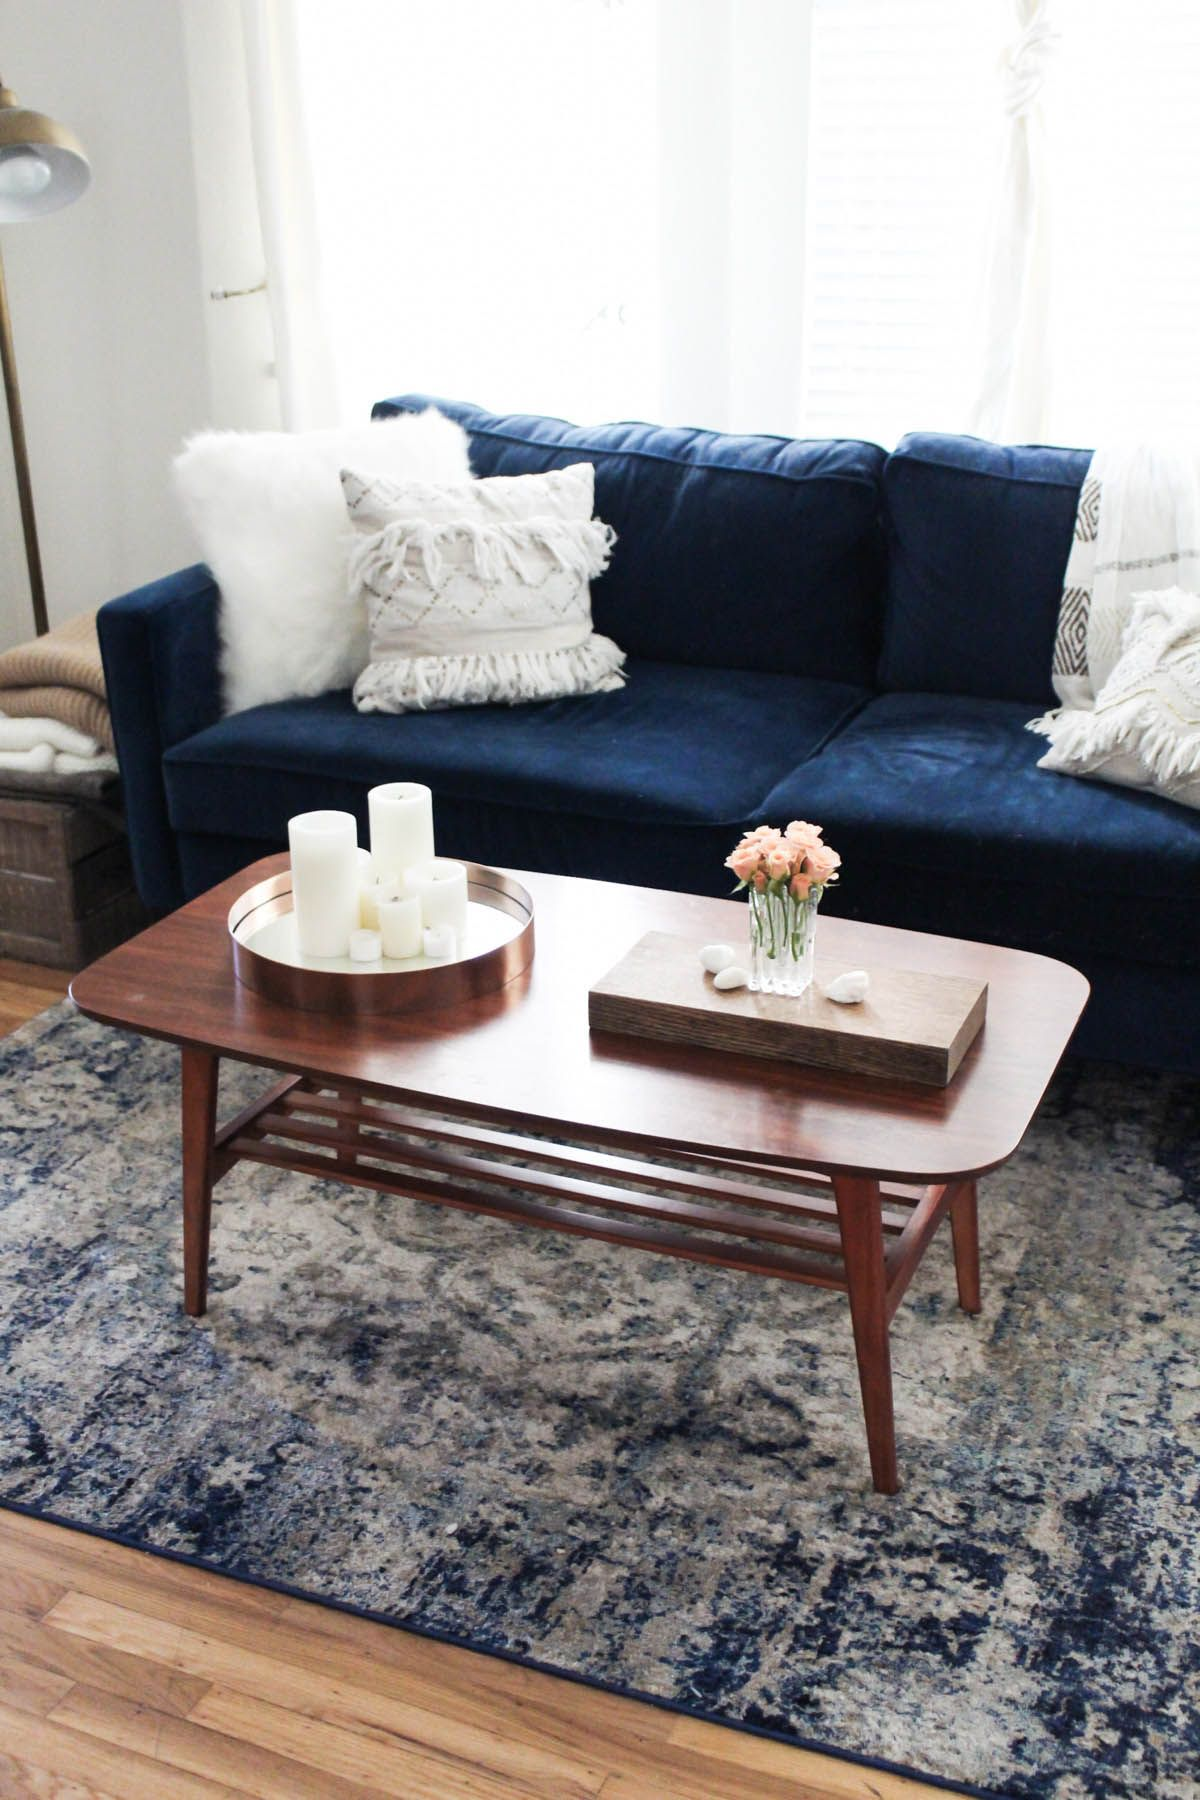 3 Ways To Style A Coffee Table | Advice From A Twenty Something